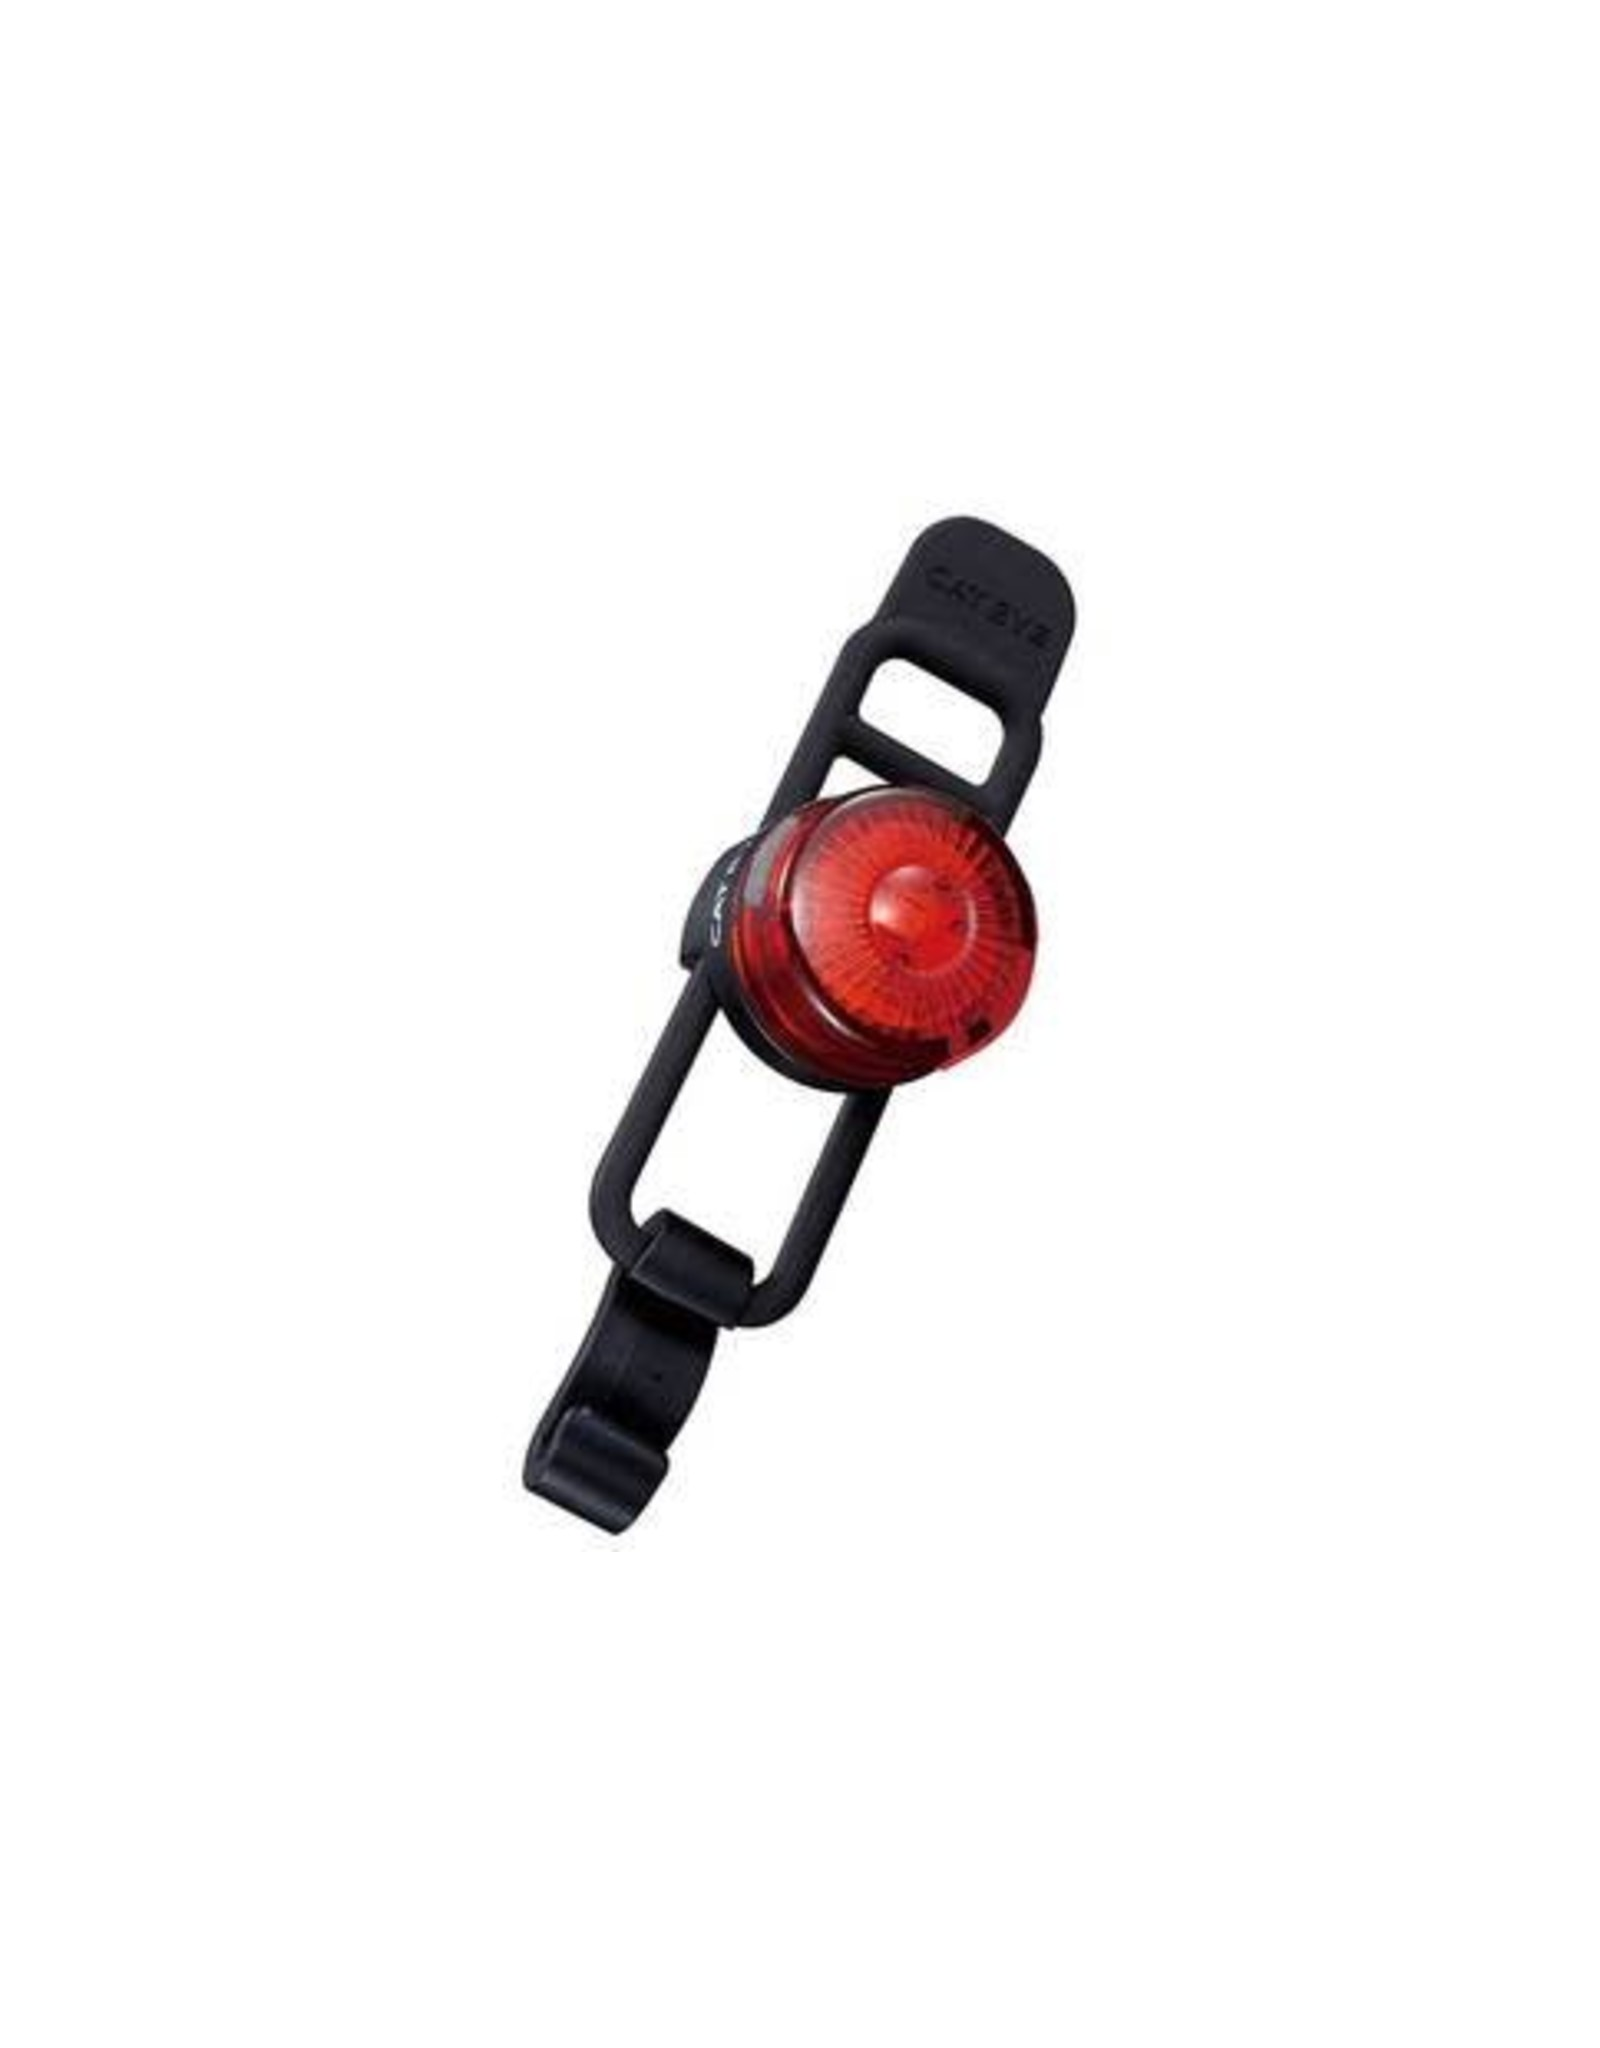 Cateye LOOP 2 USB RECHARGEABLE REAR LIGHT: